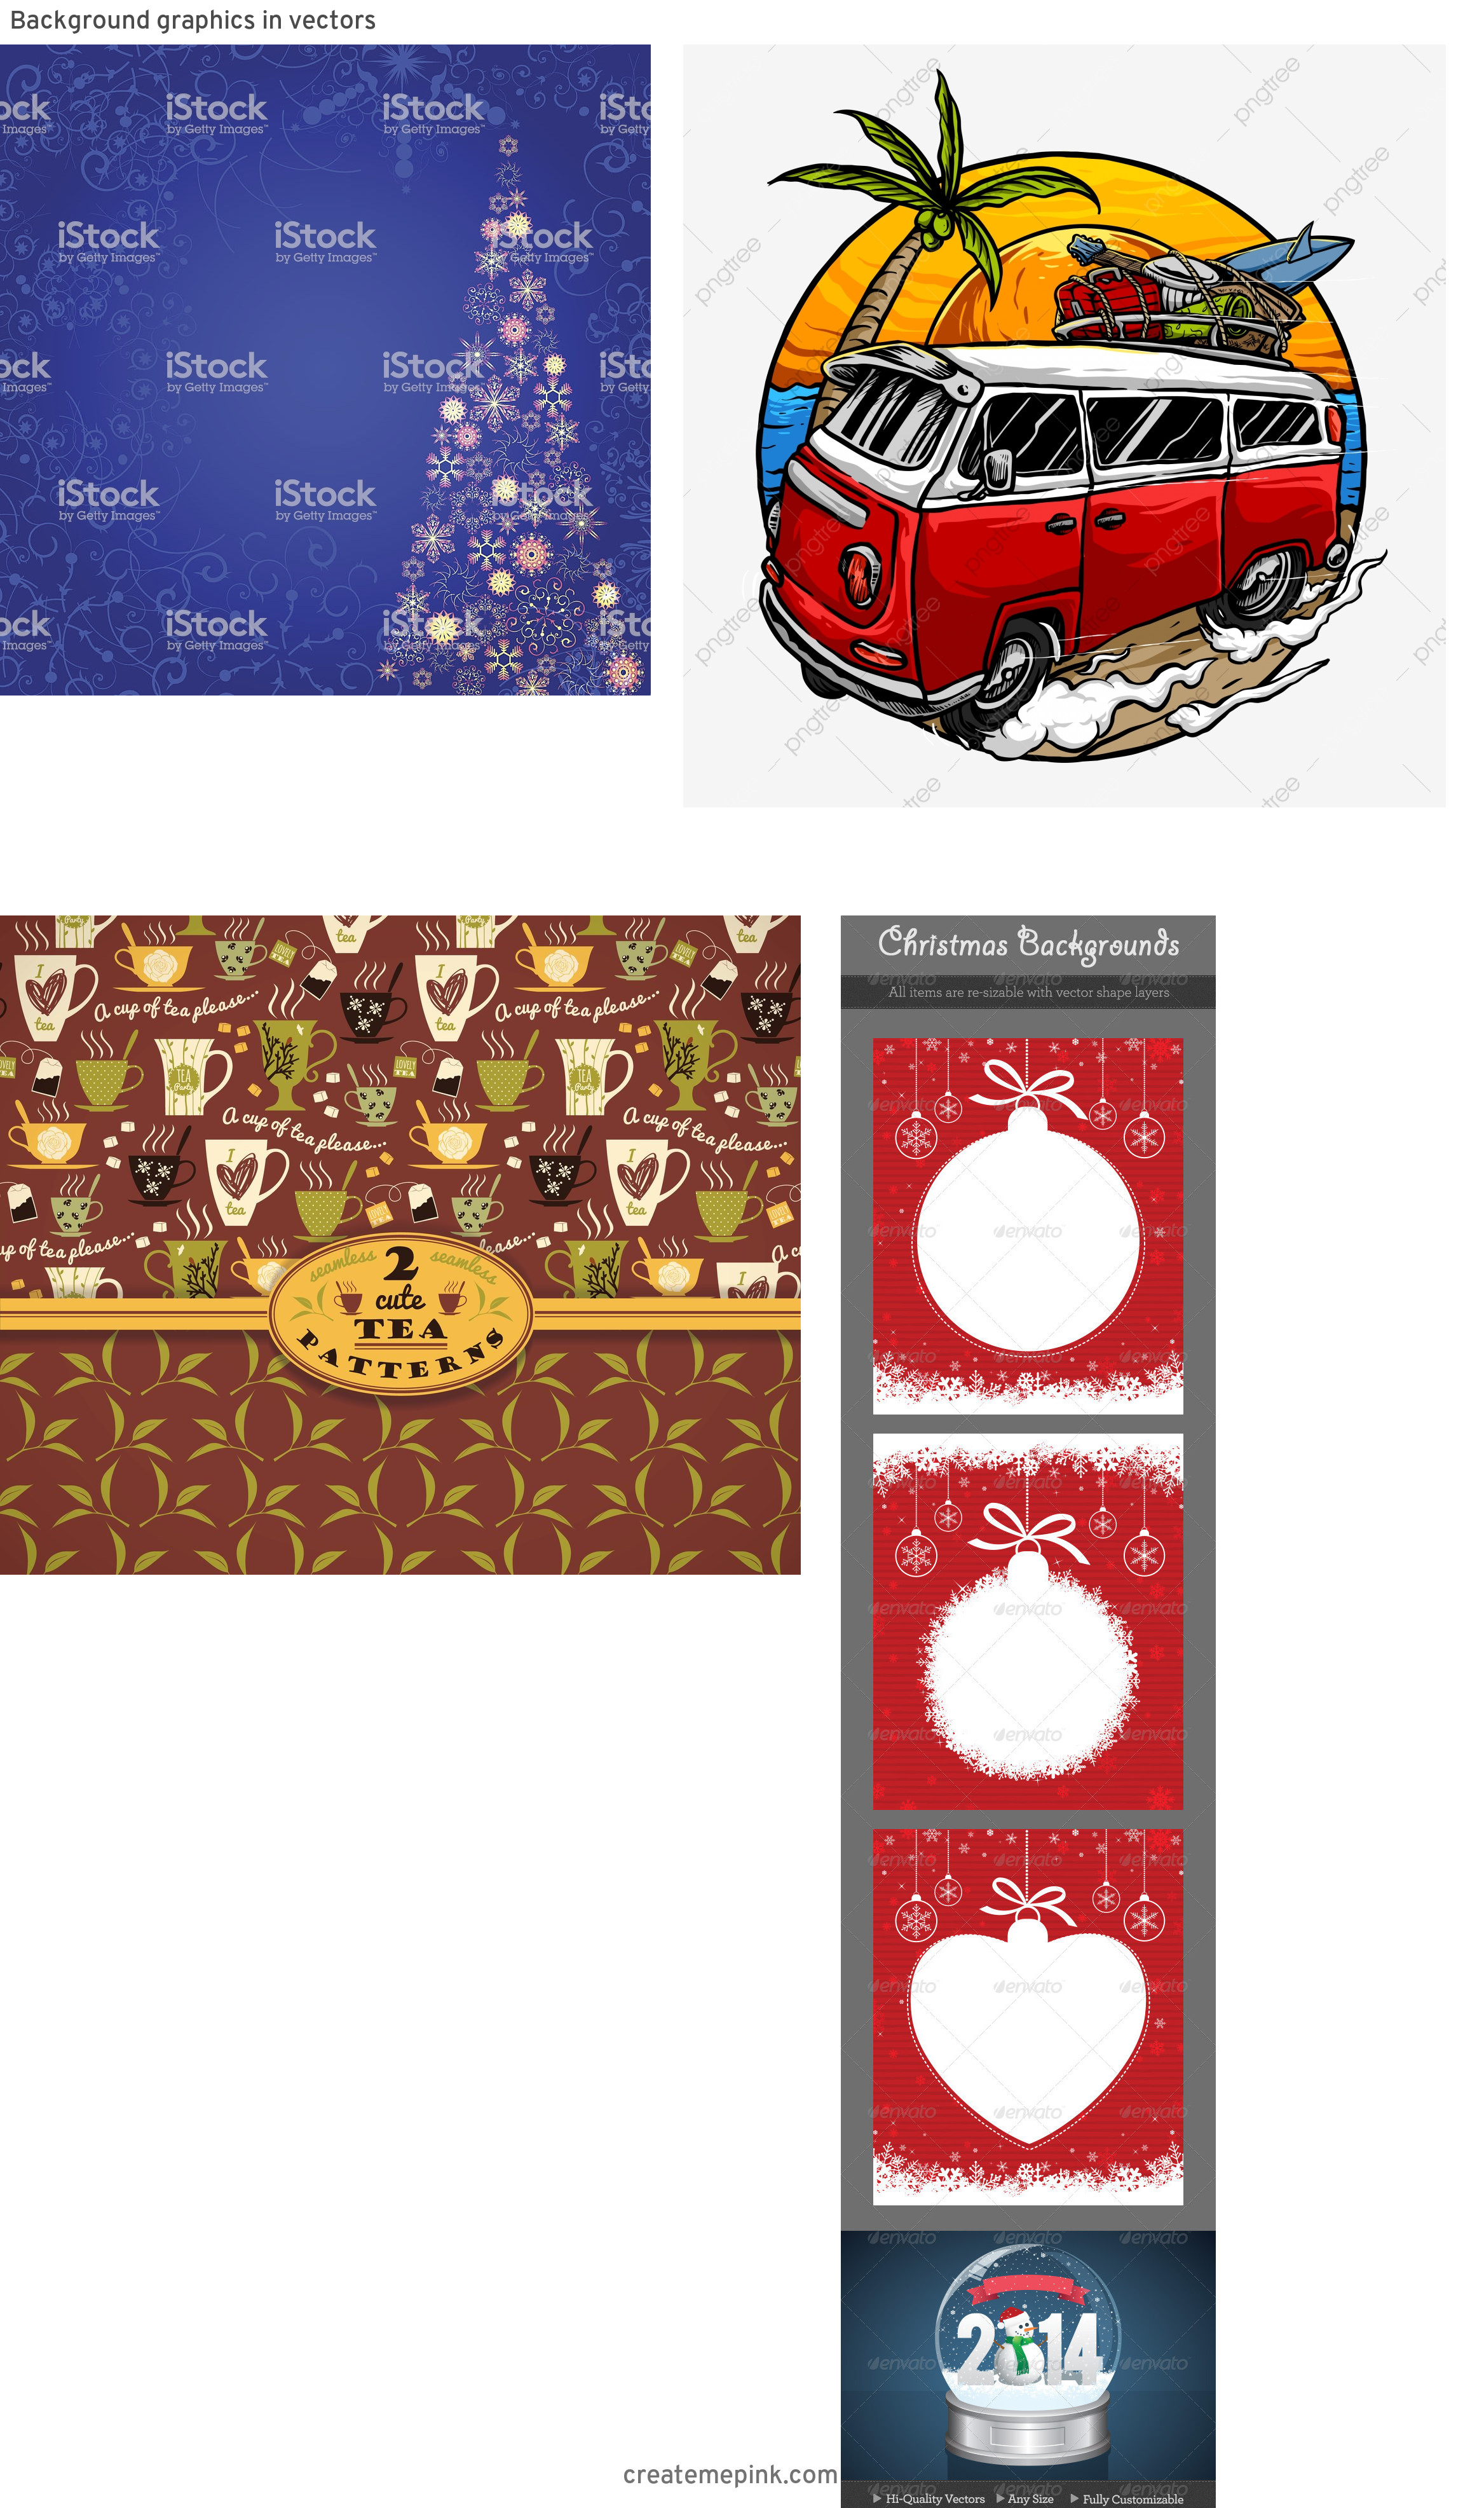 Professional Christmas Backgrounds Vector: Background Graphics In Vectors